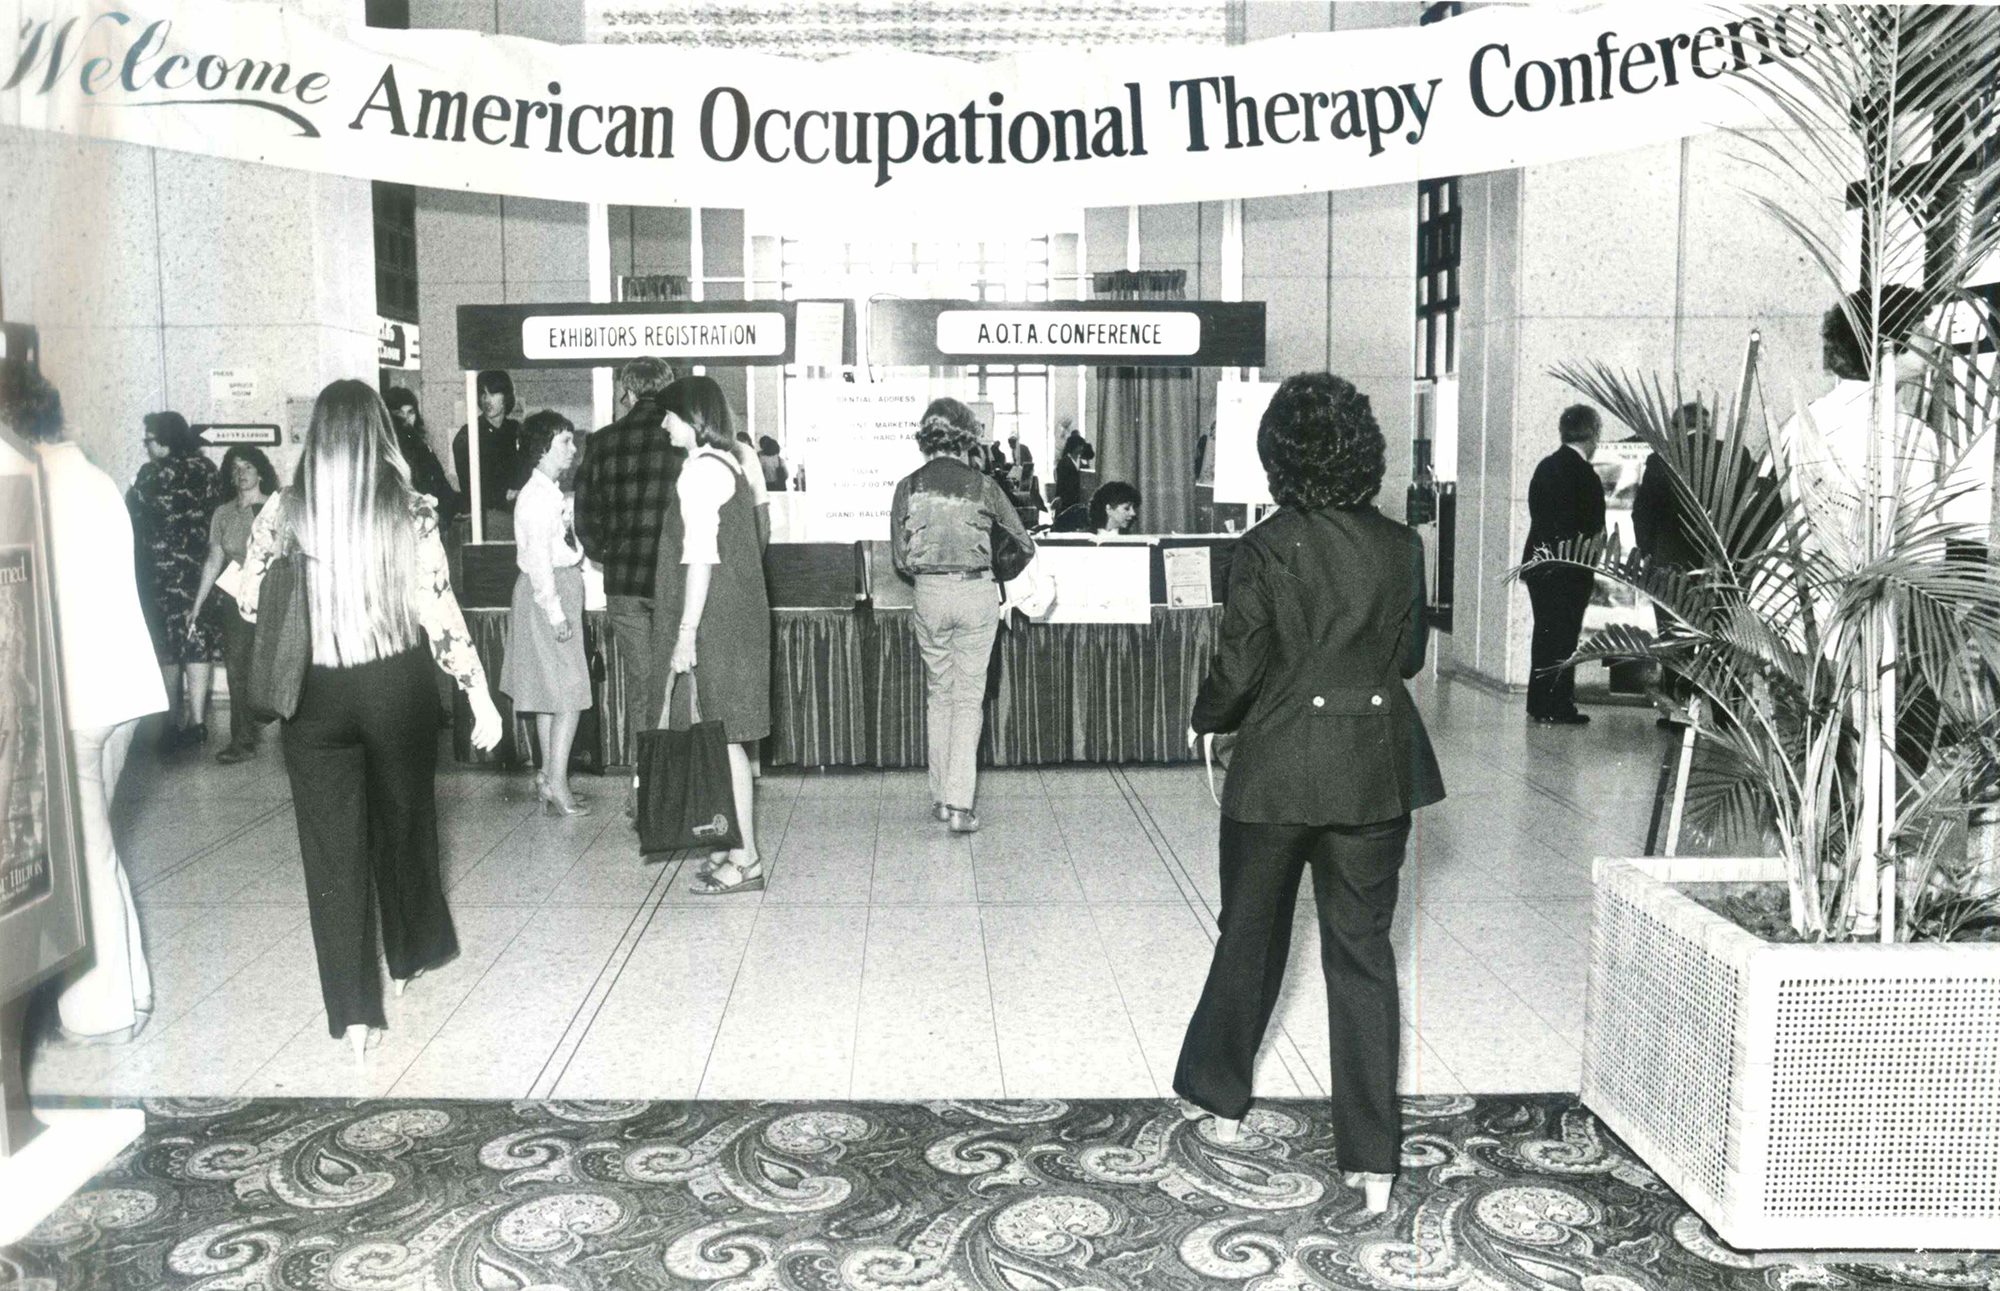 Registration area in 1980.